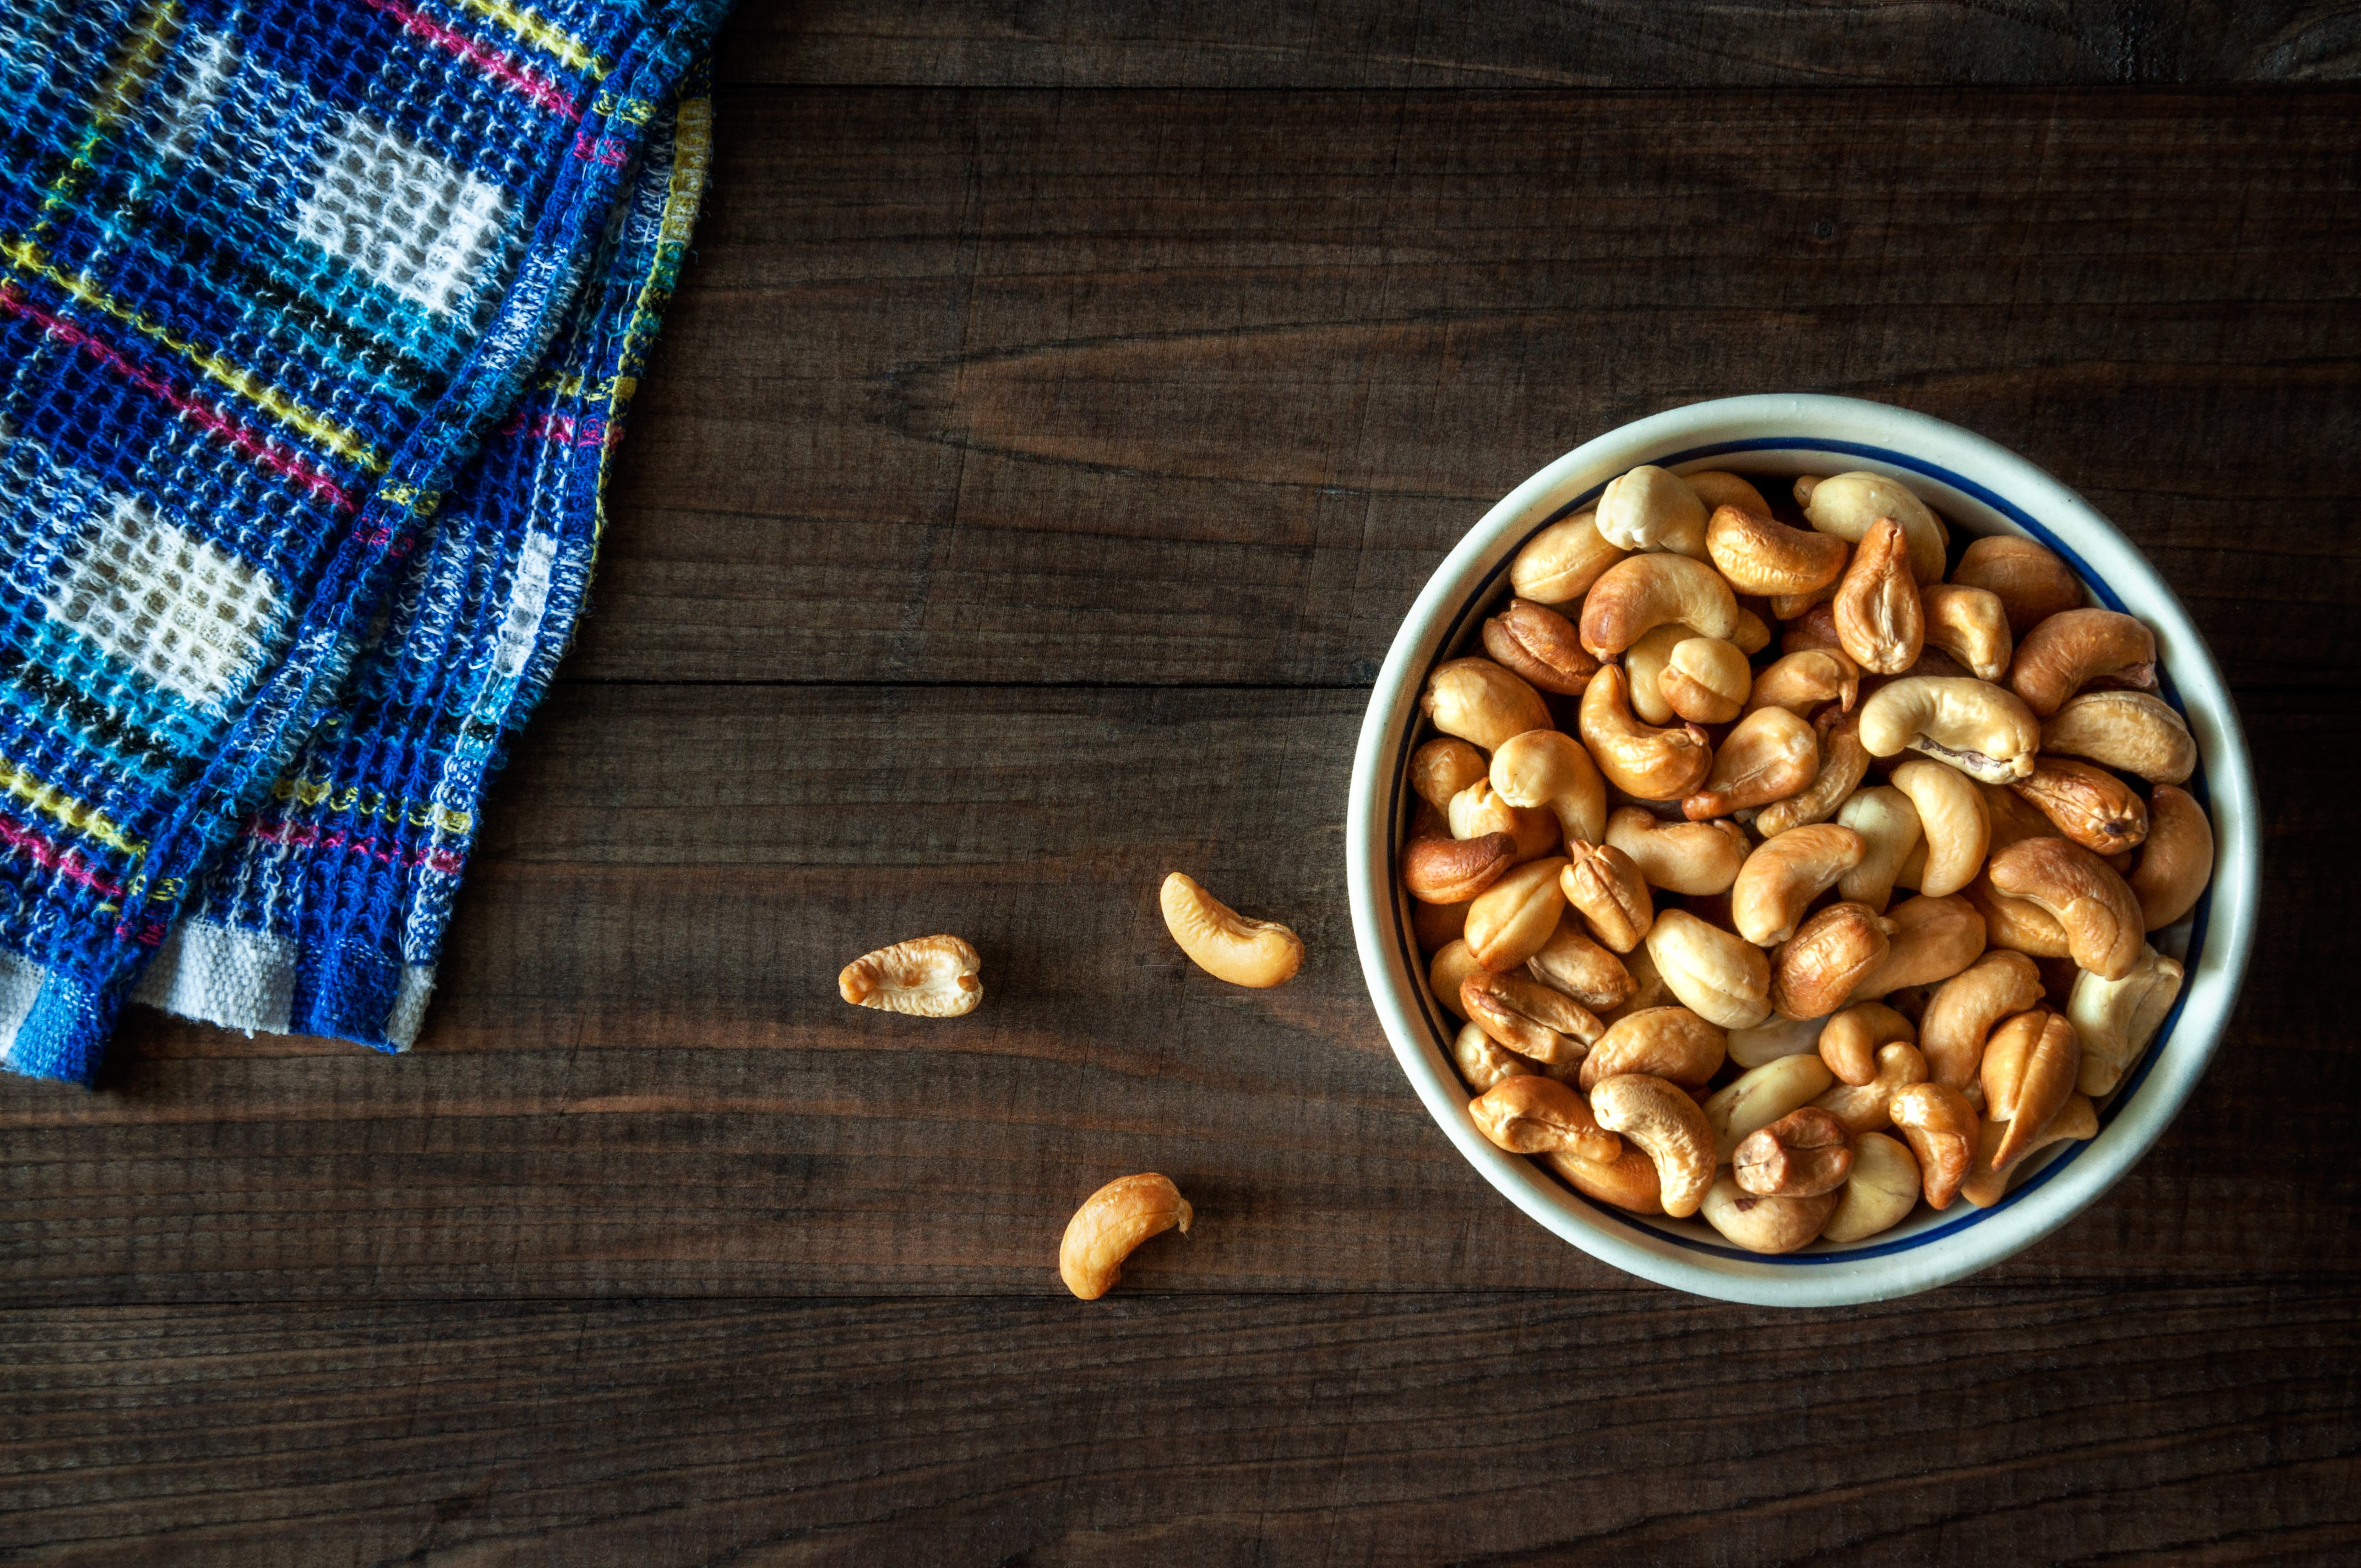 Is There a Link Between Acne and Eating Cashews?